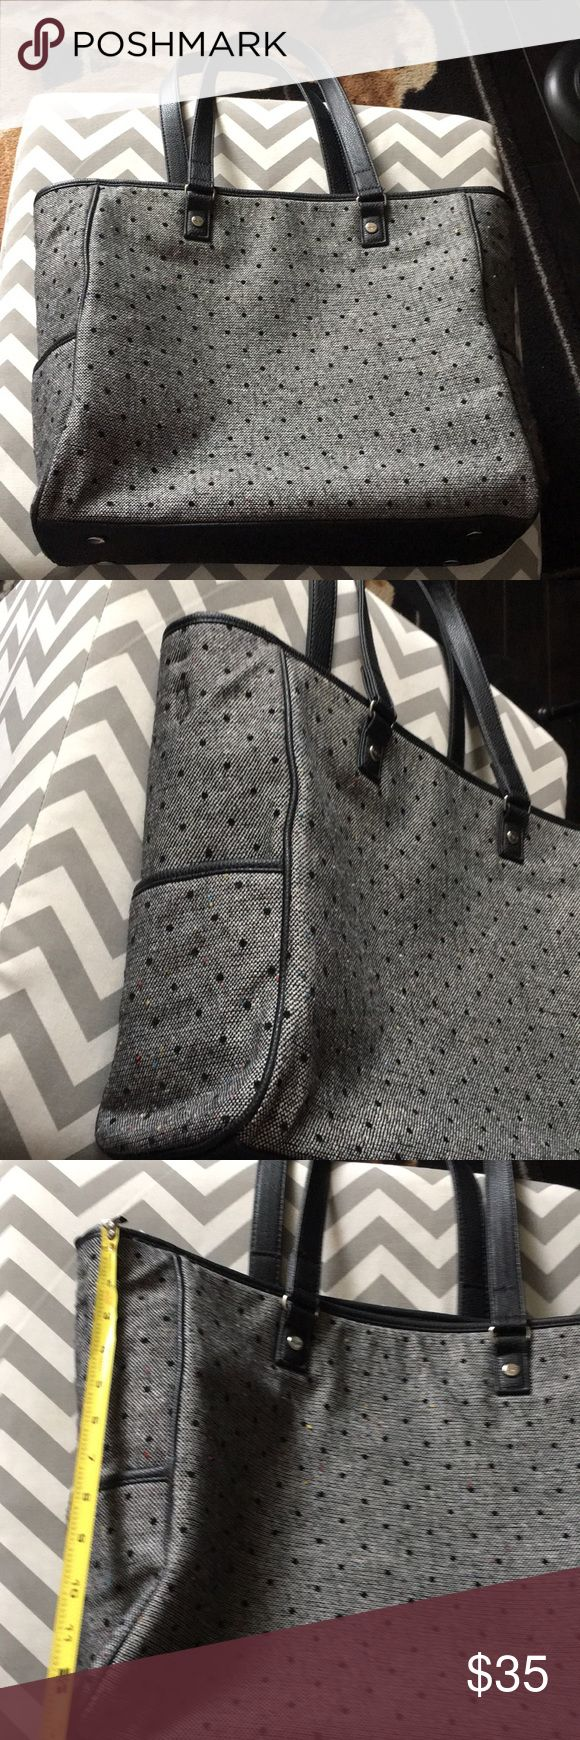 Thirty one tote like new Thirty one tote like new. thirty one Bags Totes